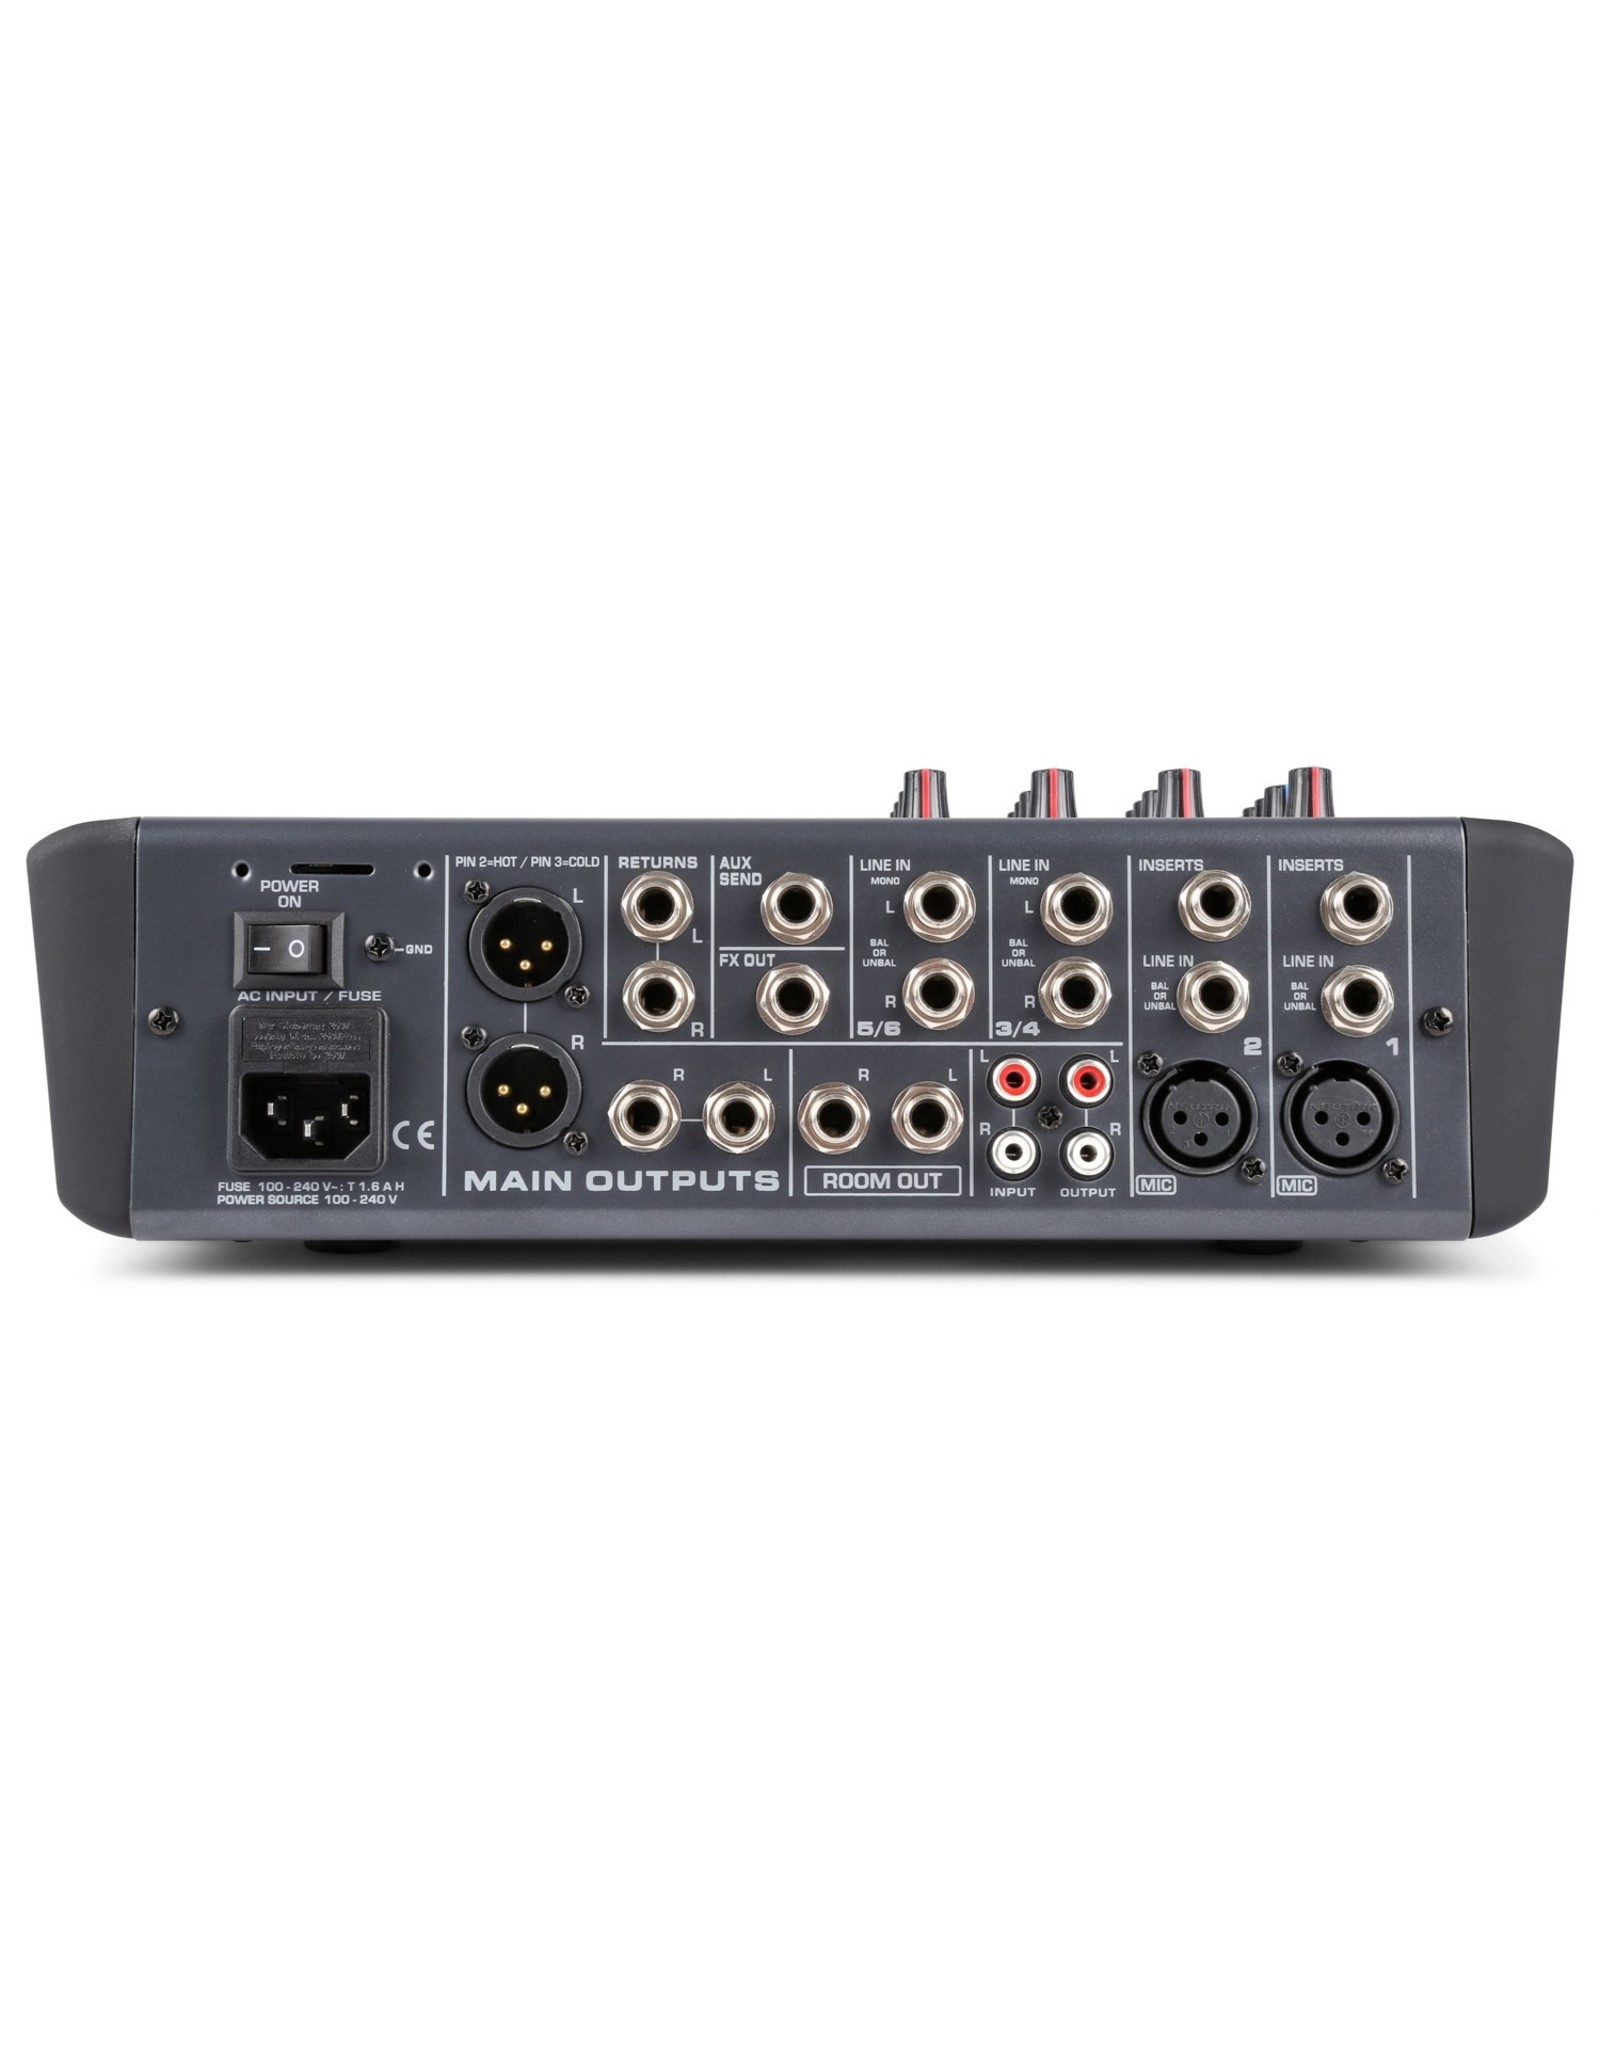 Power Dynamics Power Dynamics PDM-S604 6-Kanaals Professionele Analoge Mixer